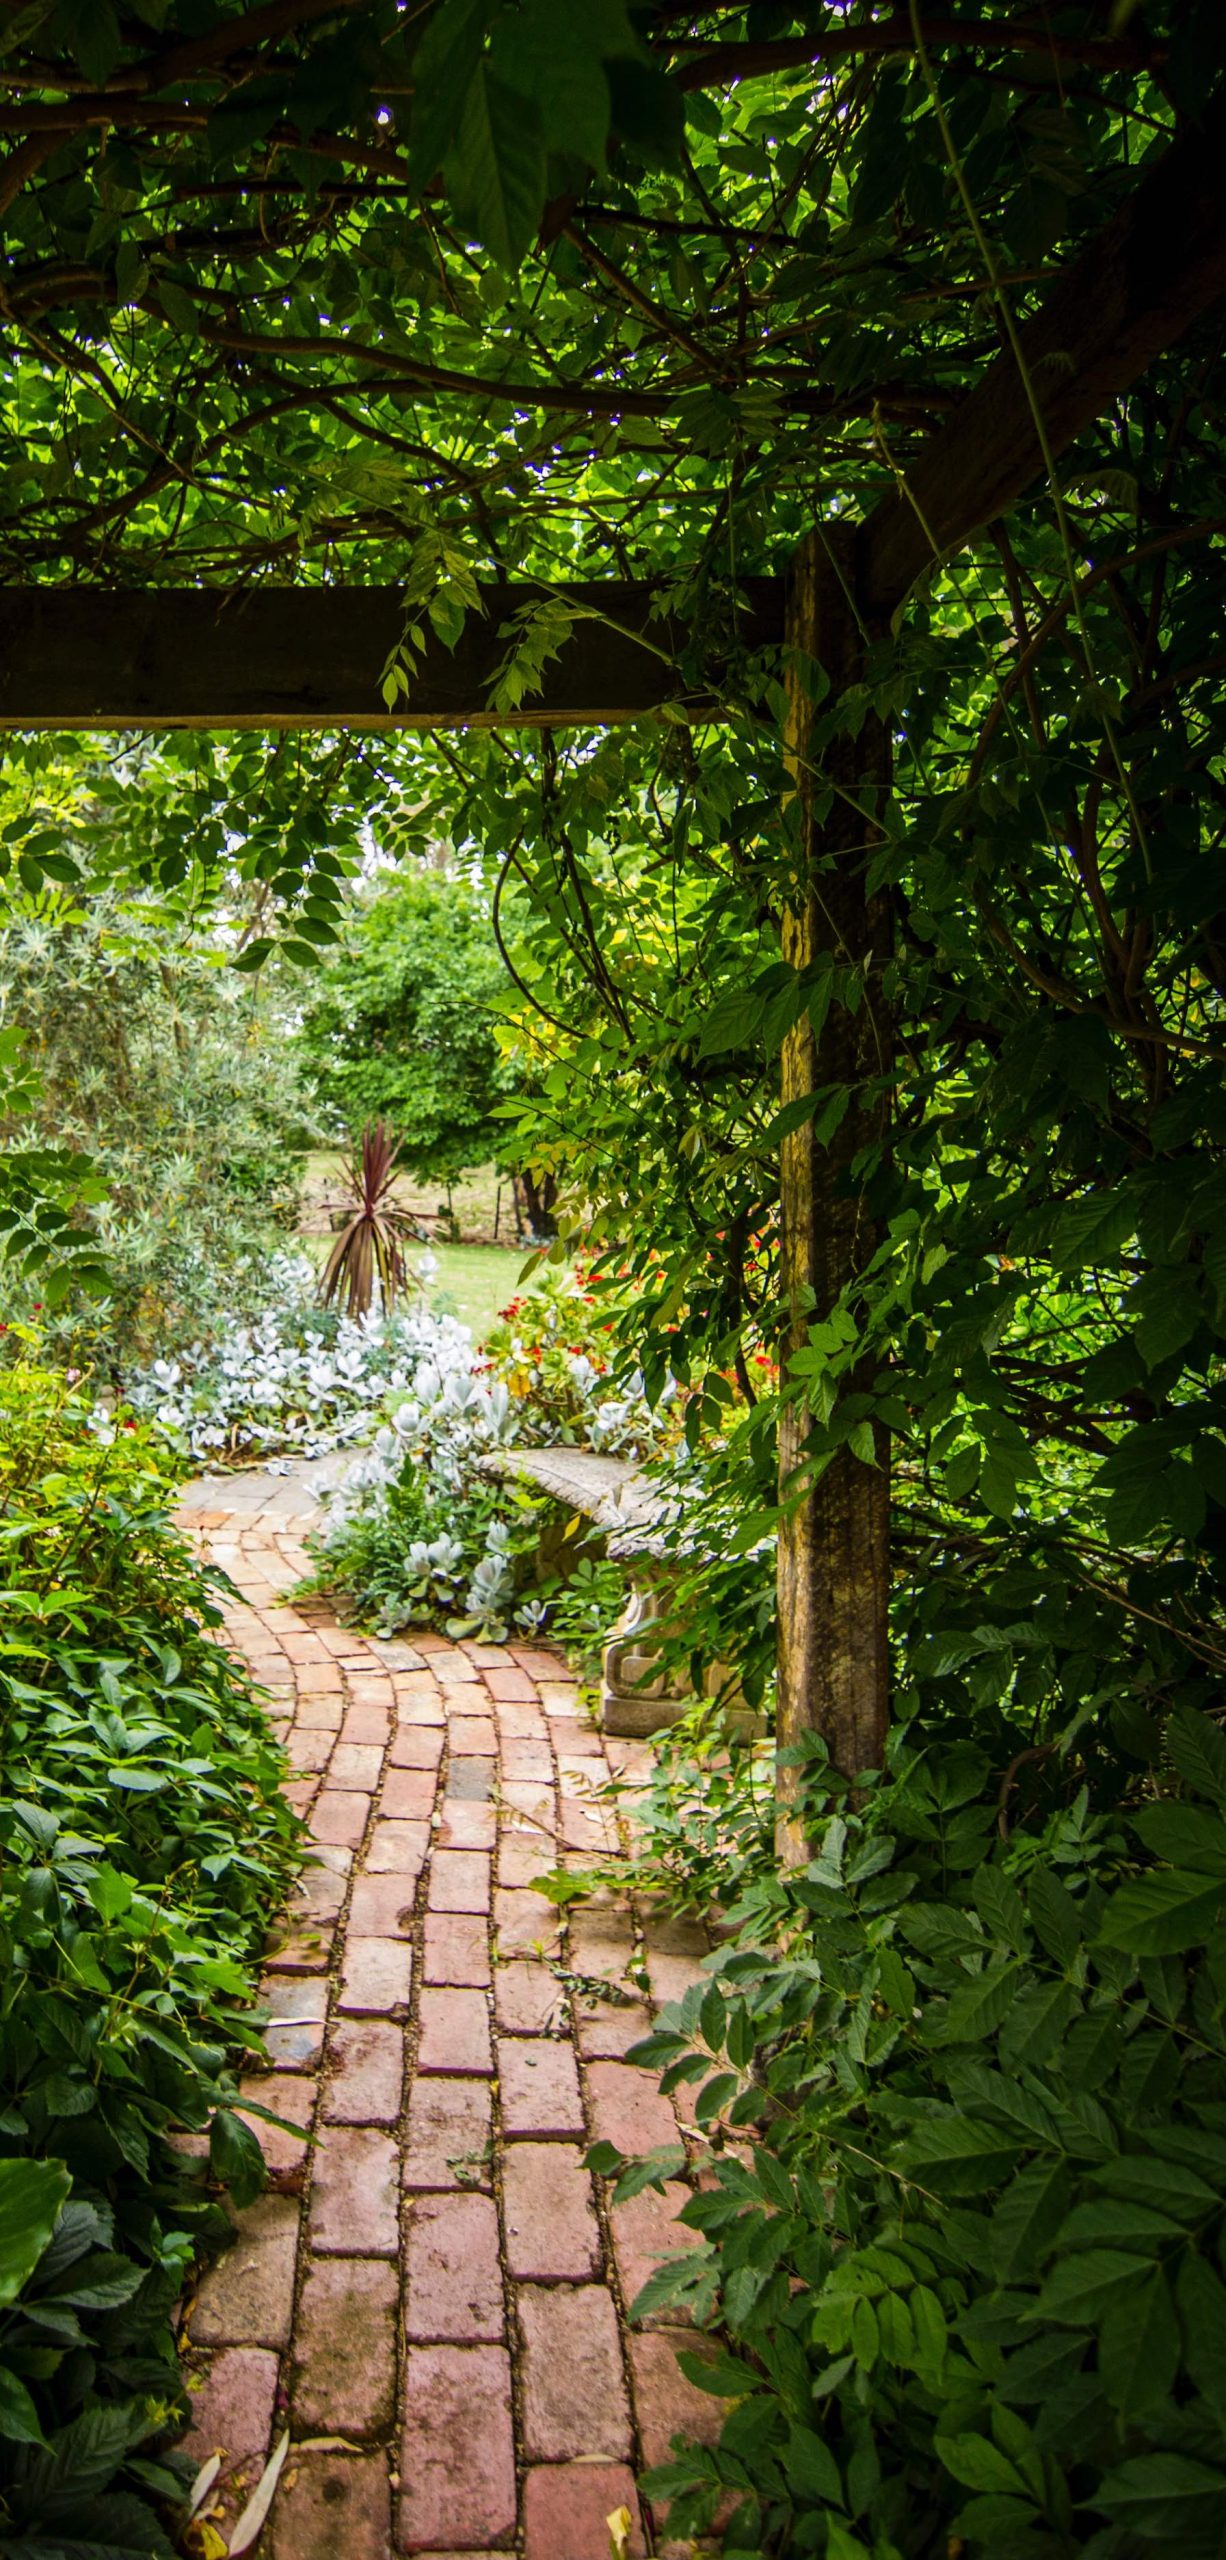 a paved path leading through a garden